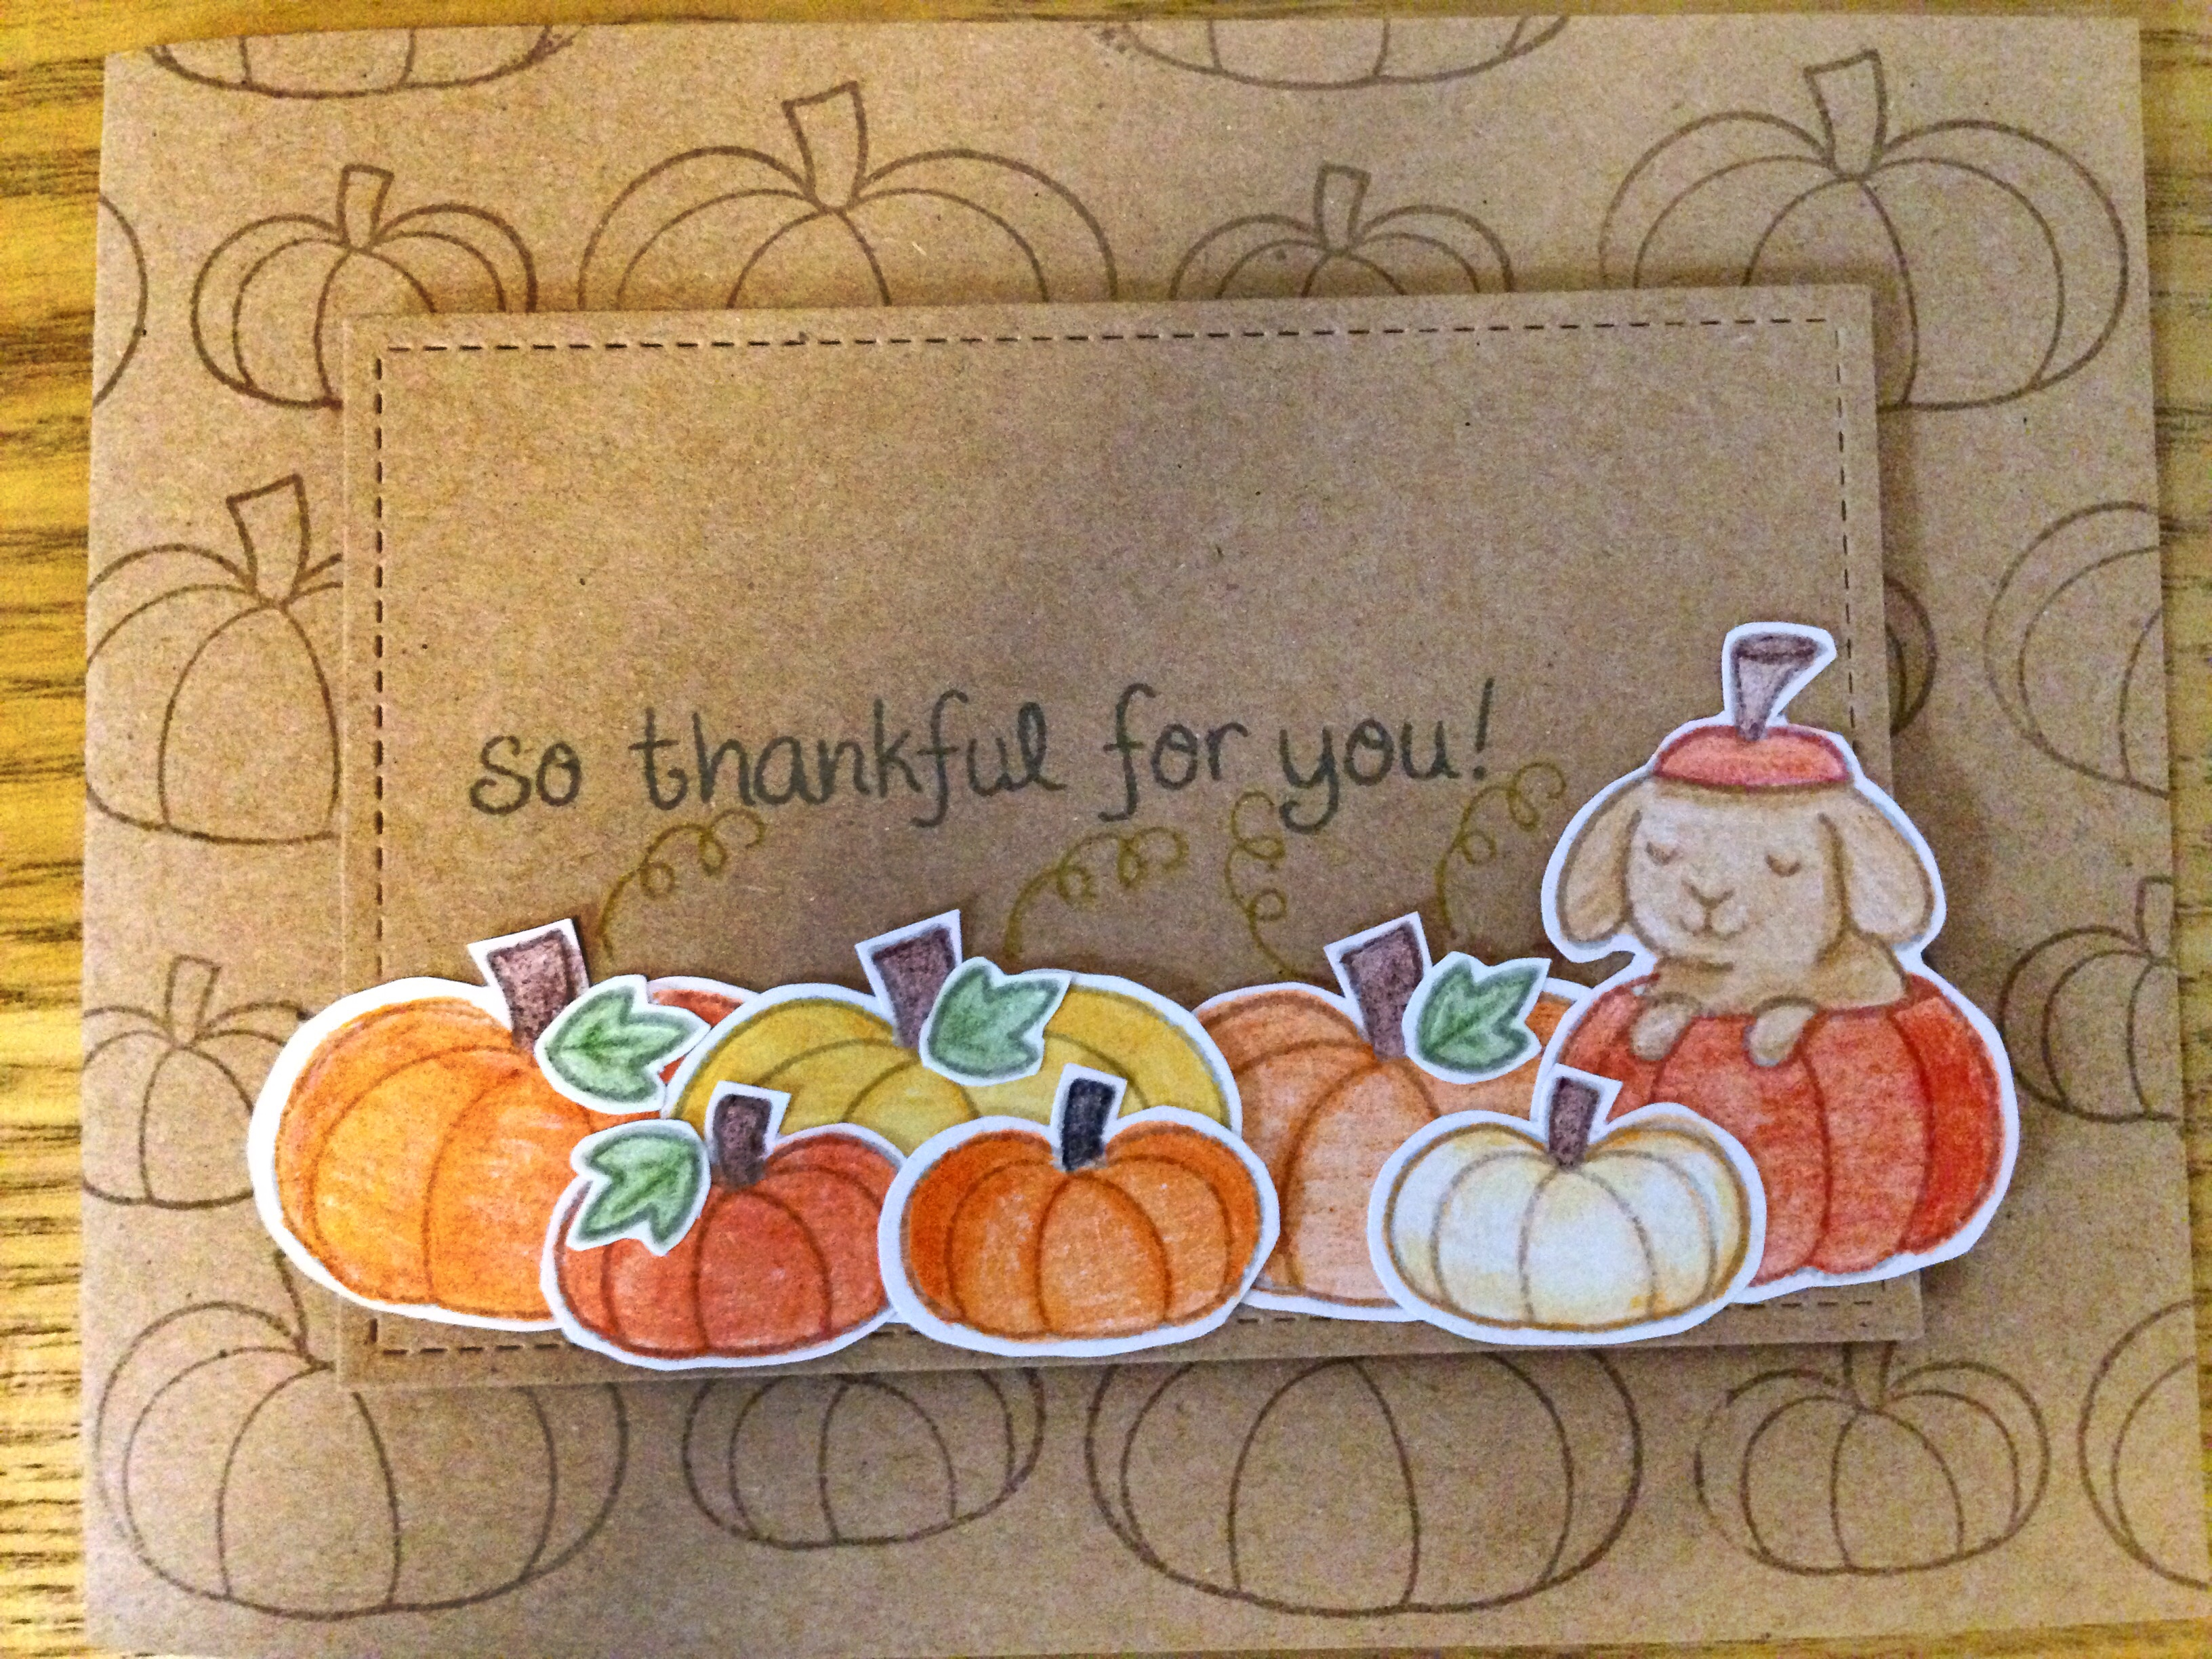 so-thankful-card_27120223736_o